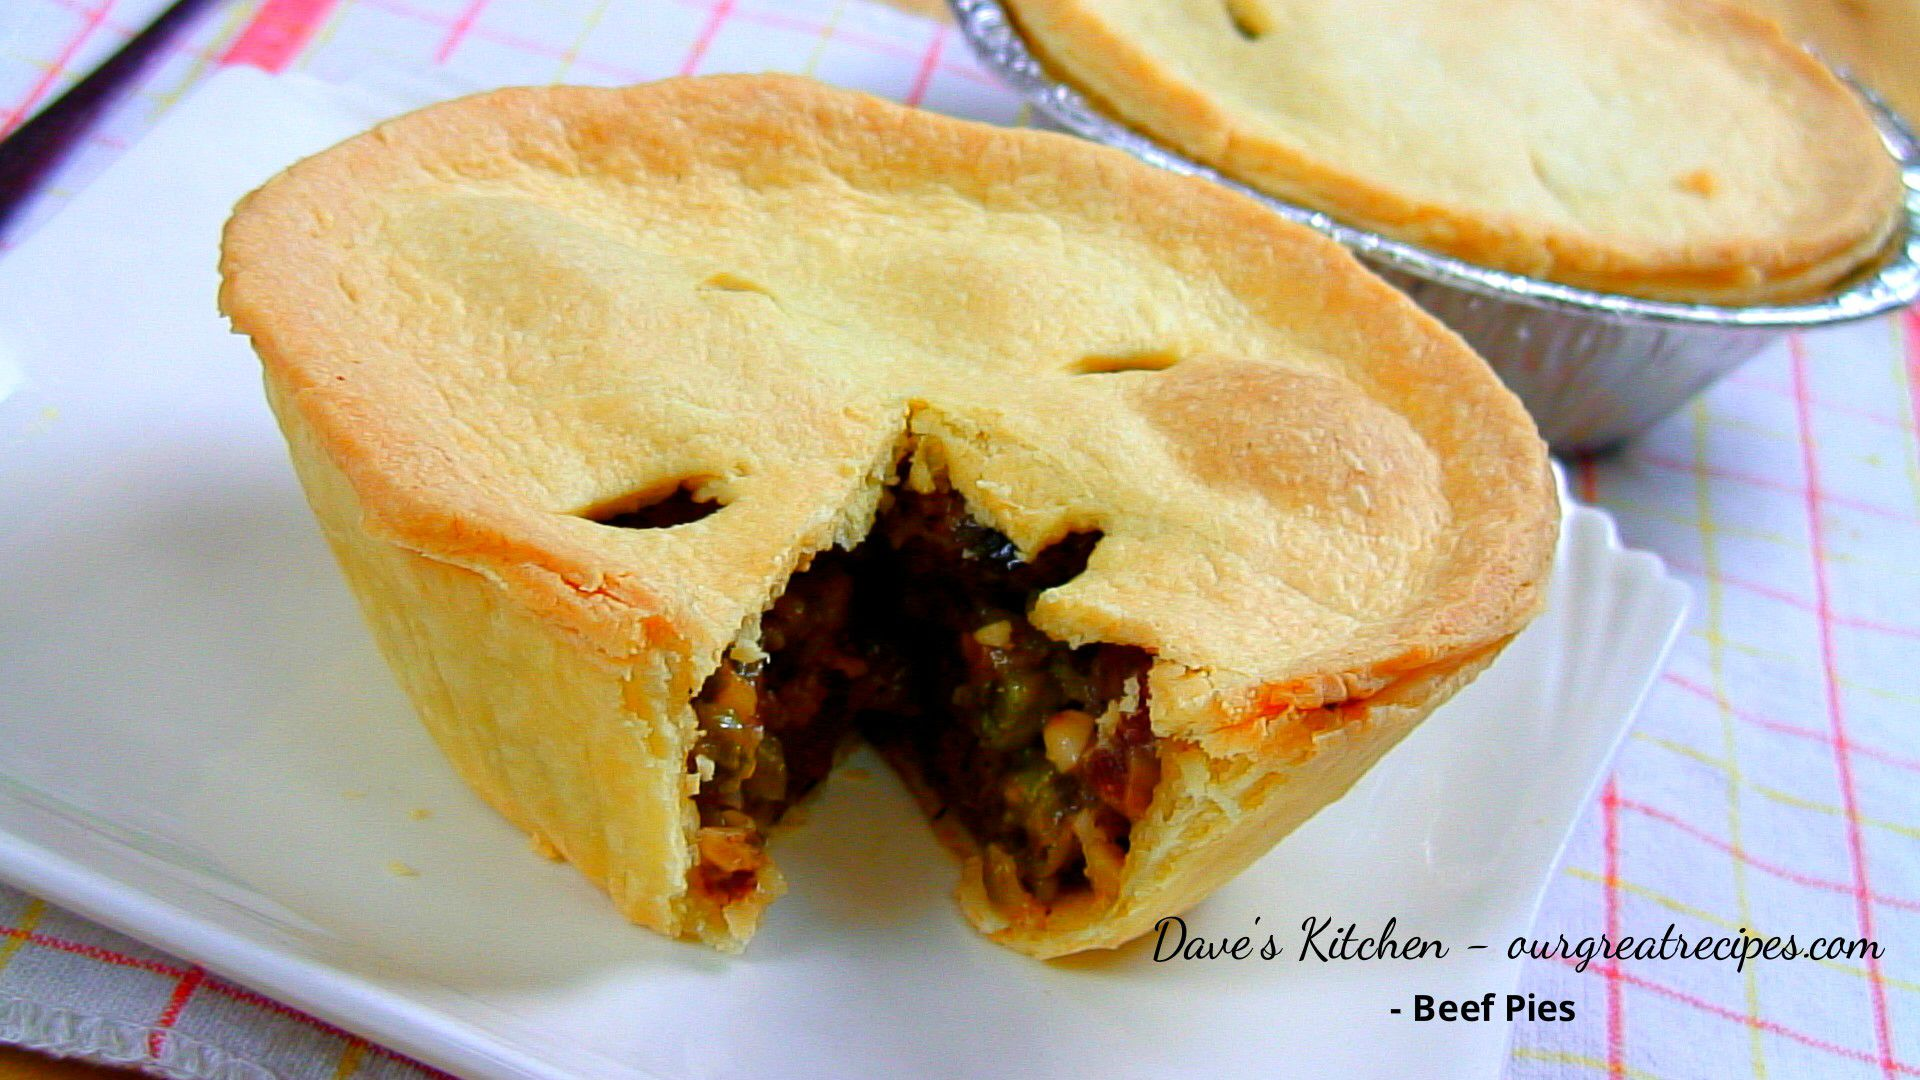 Homemade Beef Pies